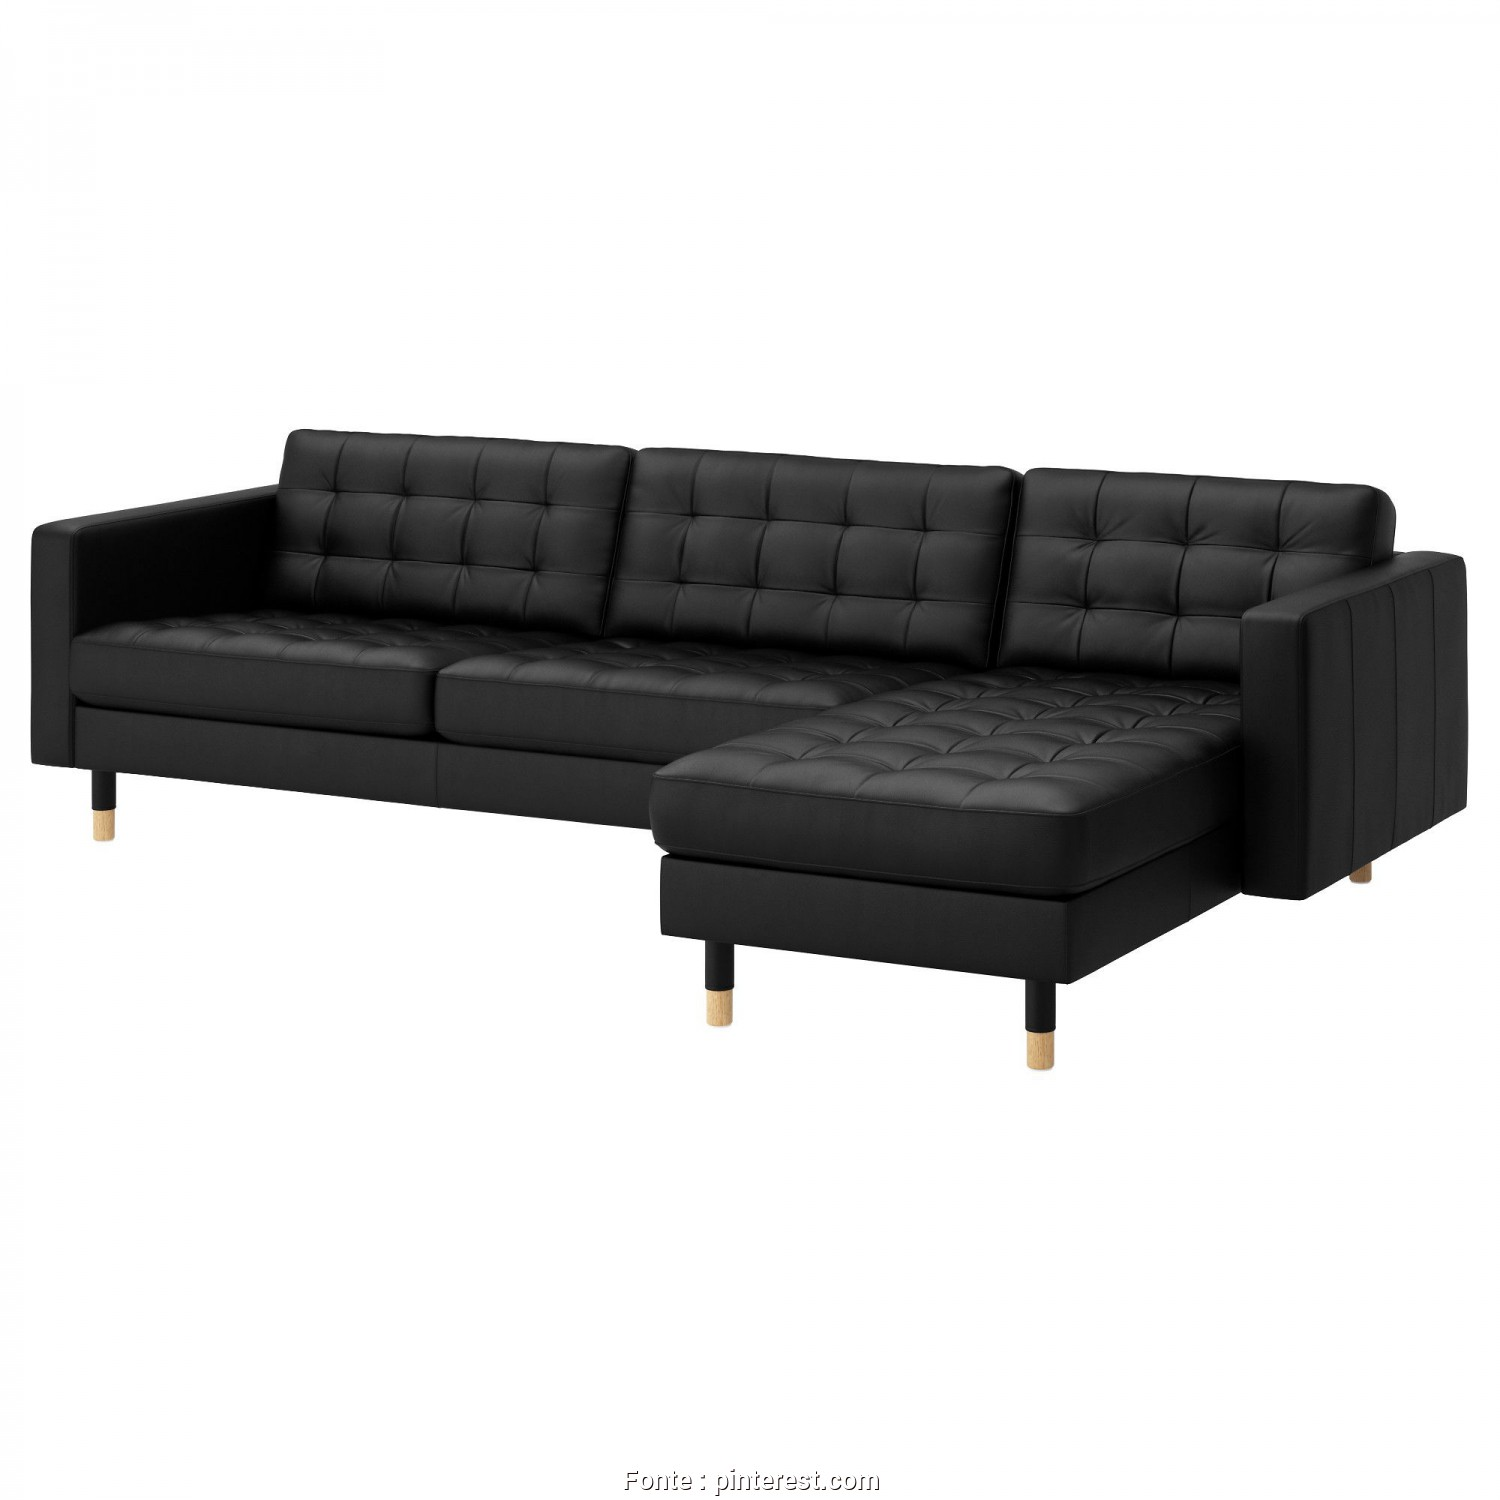 Backabro Bettsofa Ikea, Esclusivo I.Pinimg.Com/Originals/C3/9E/E4/C39Ee4843515133Bac